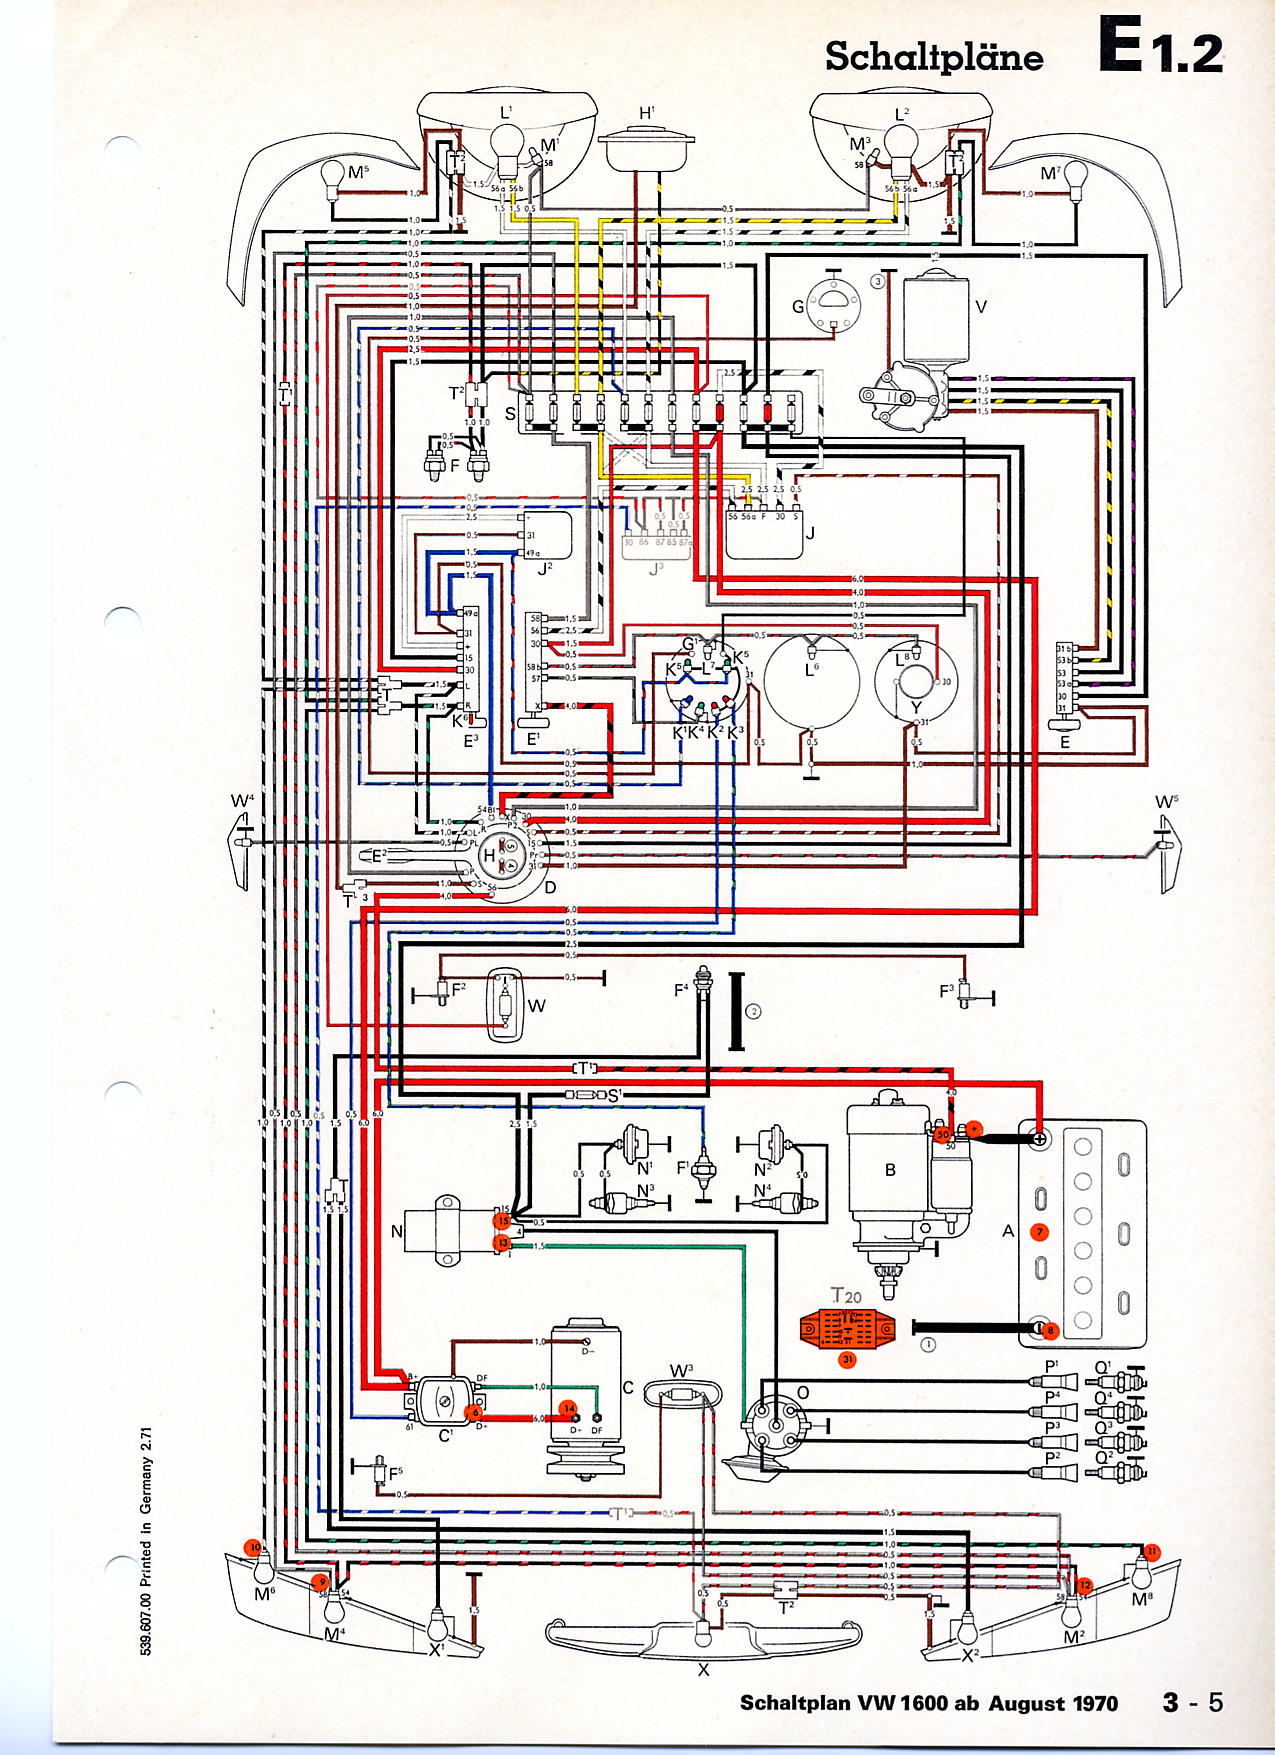 Zig Cf9 Wiring Diagram Internet of Things Diagrams Wiring Lighted Doorbell Button SINCGARS Radio Configurations Diagrams zig cf9 wiring diagram CF9 Drop 13